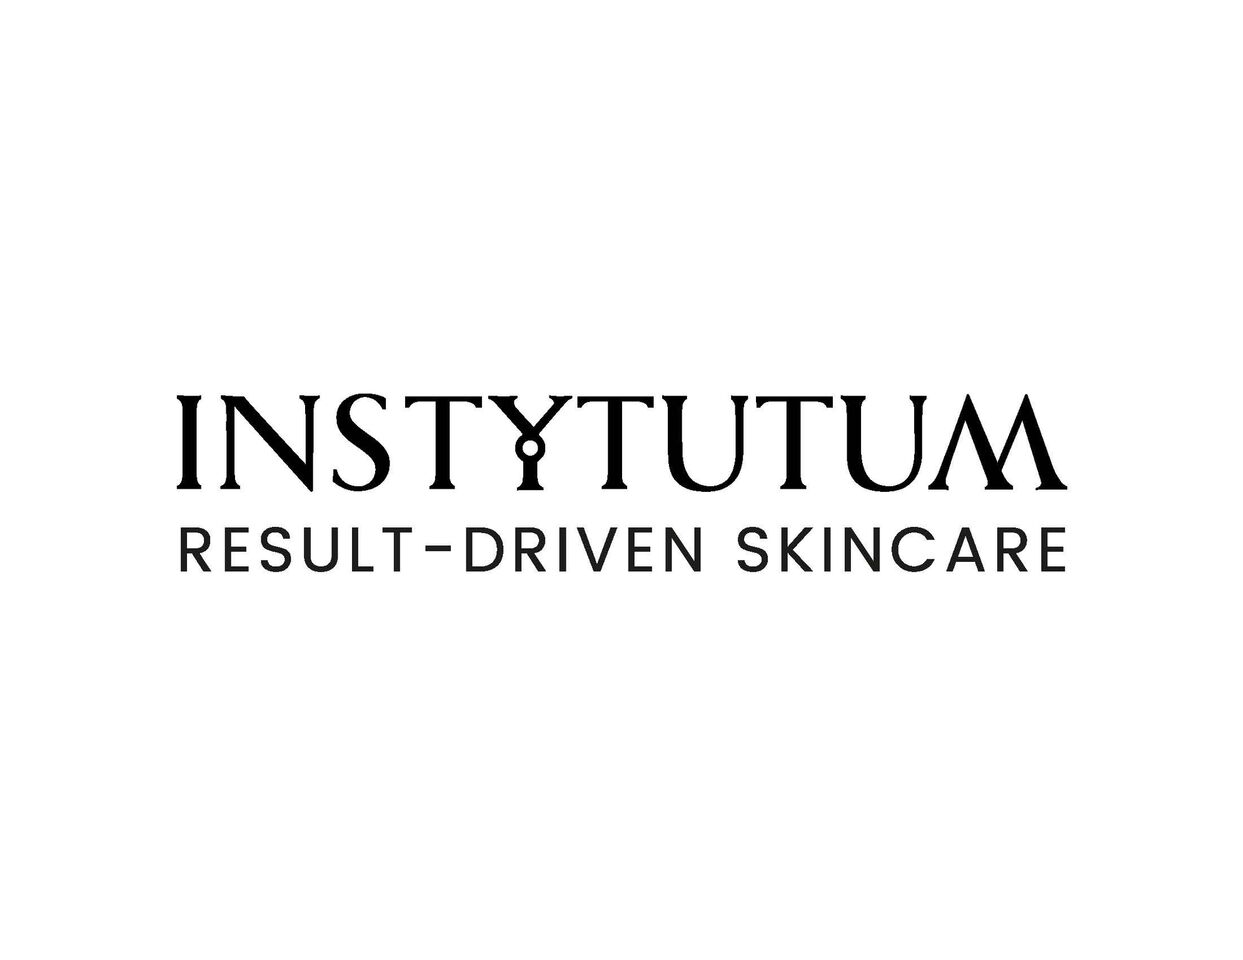 INSTYTUTUM - Use JANET20 for 20% off!